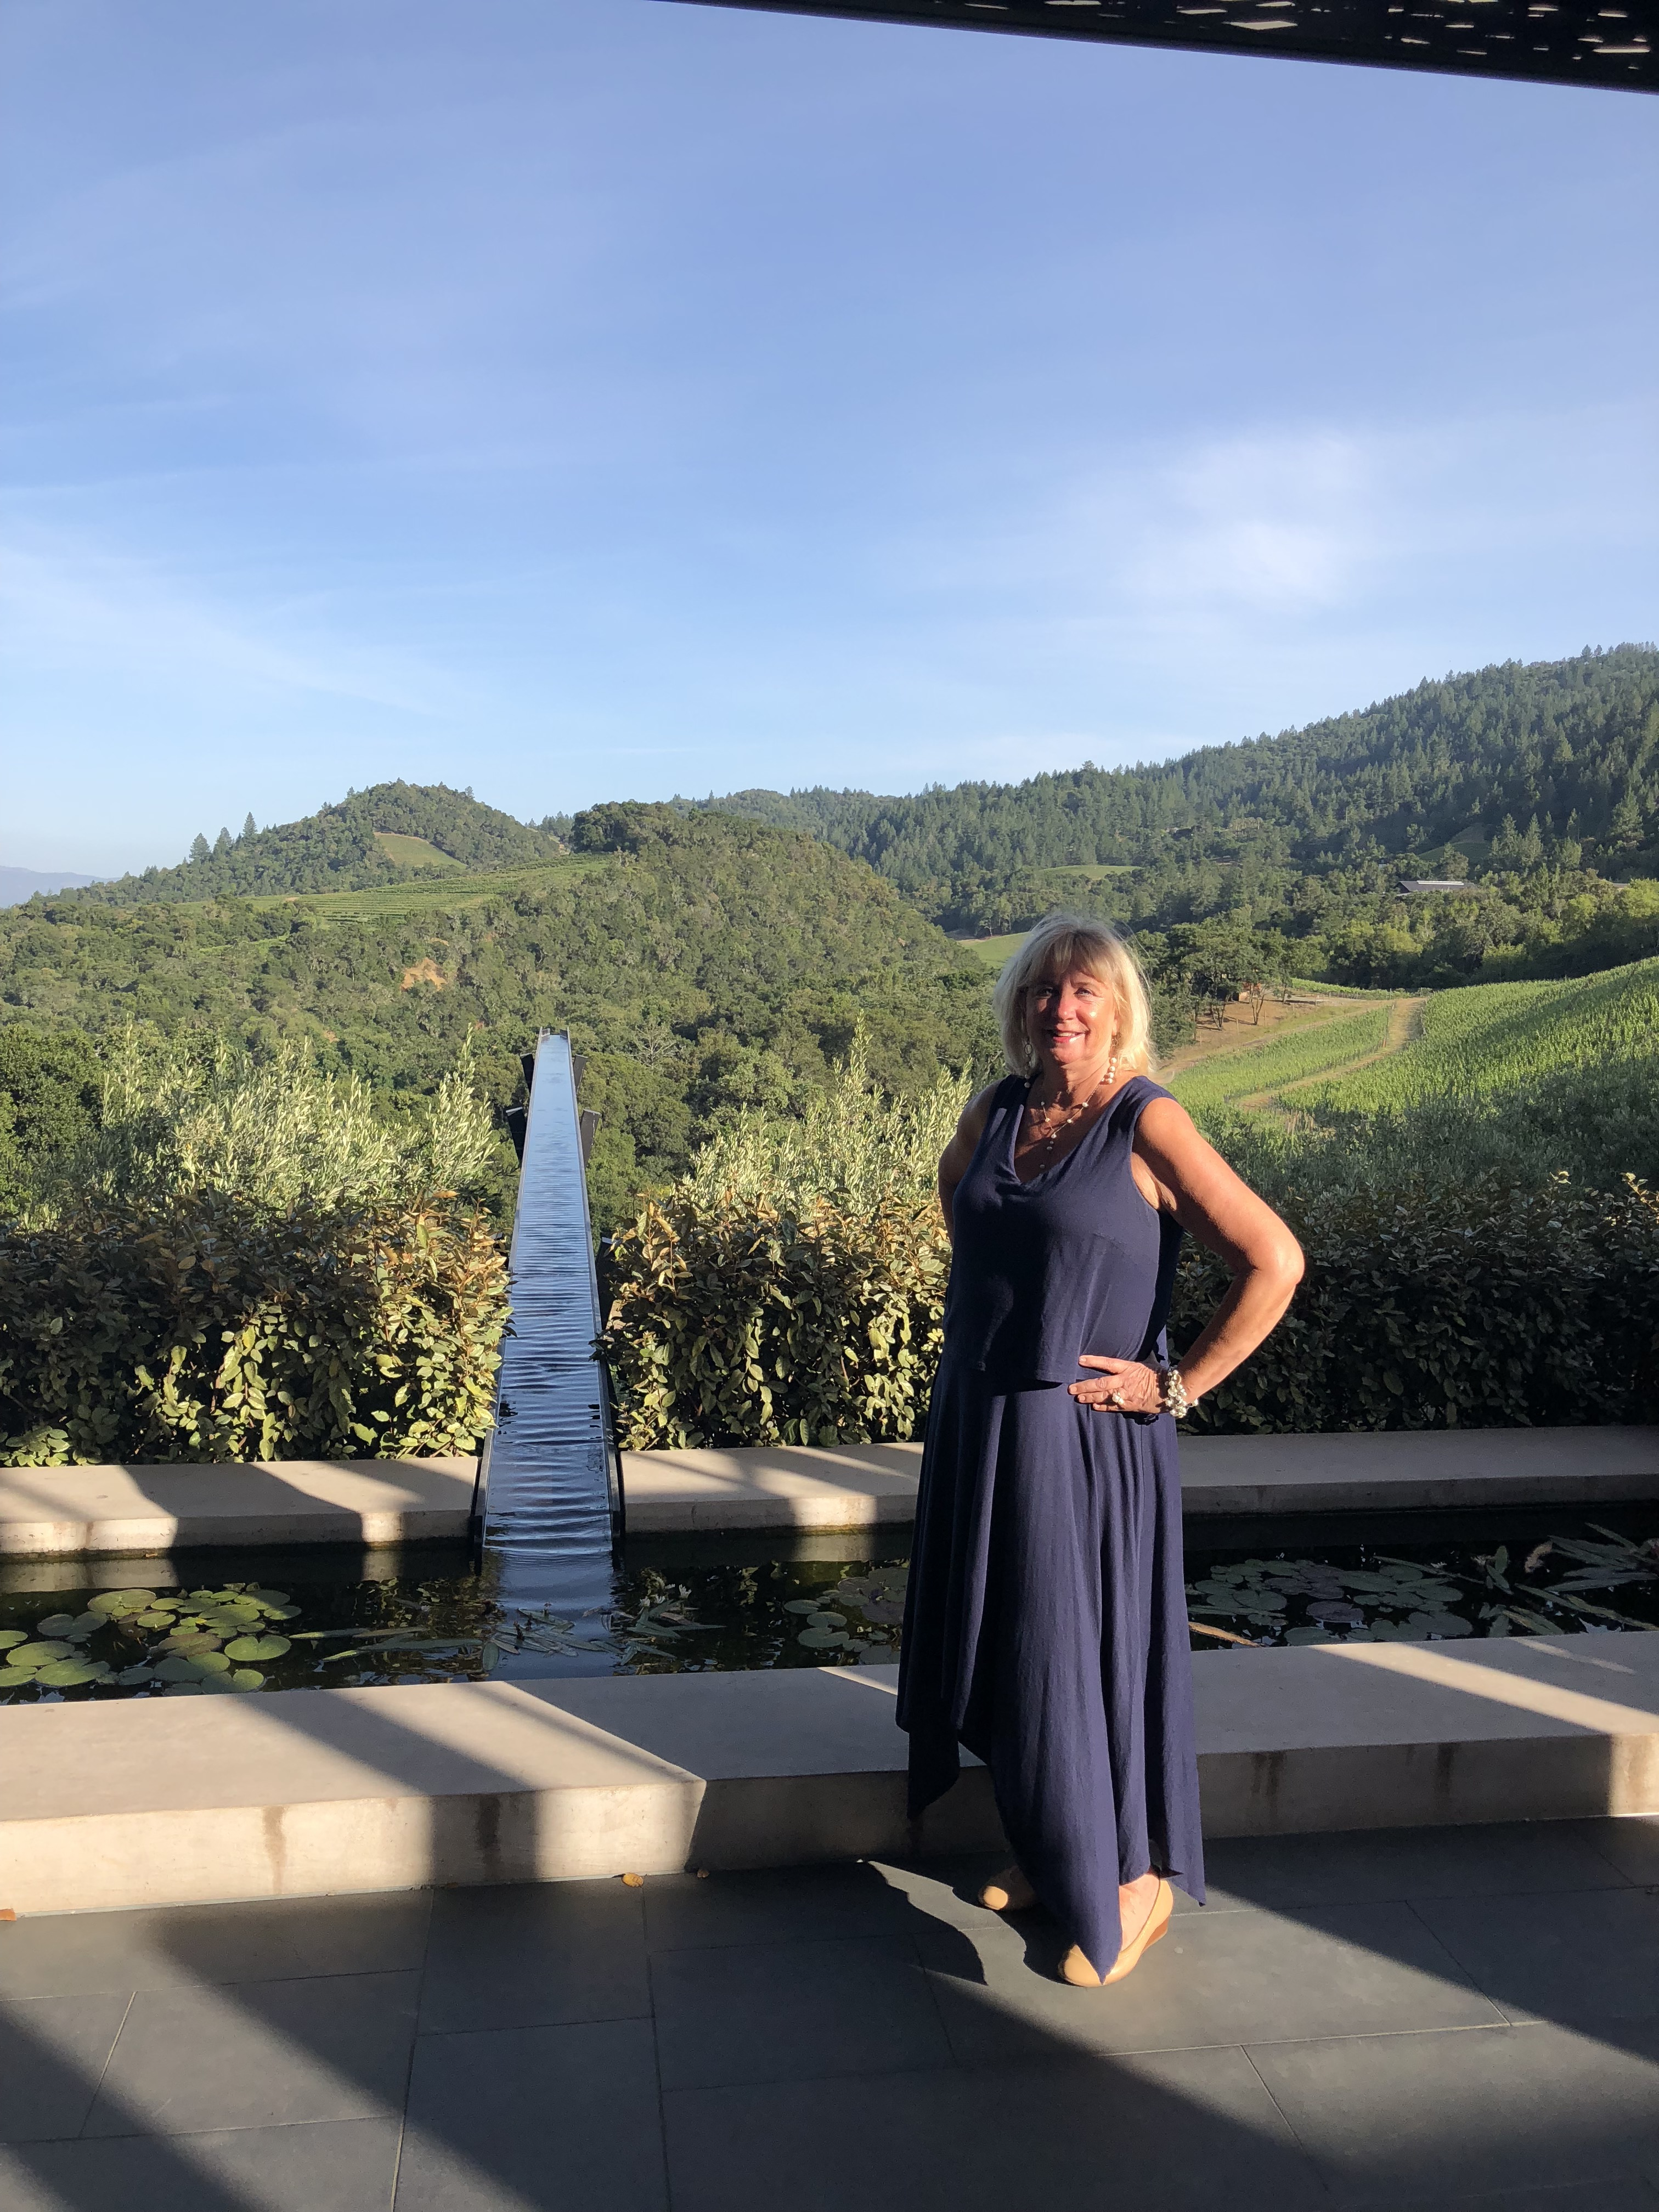 Visiting Promontory Winery